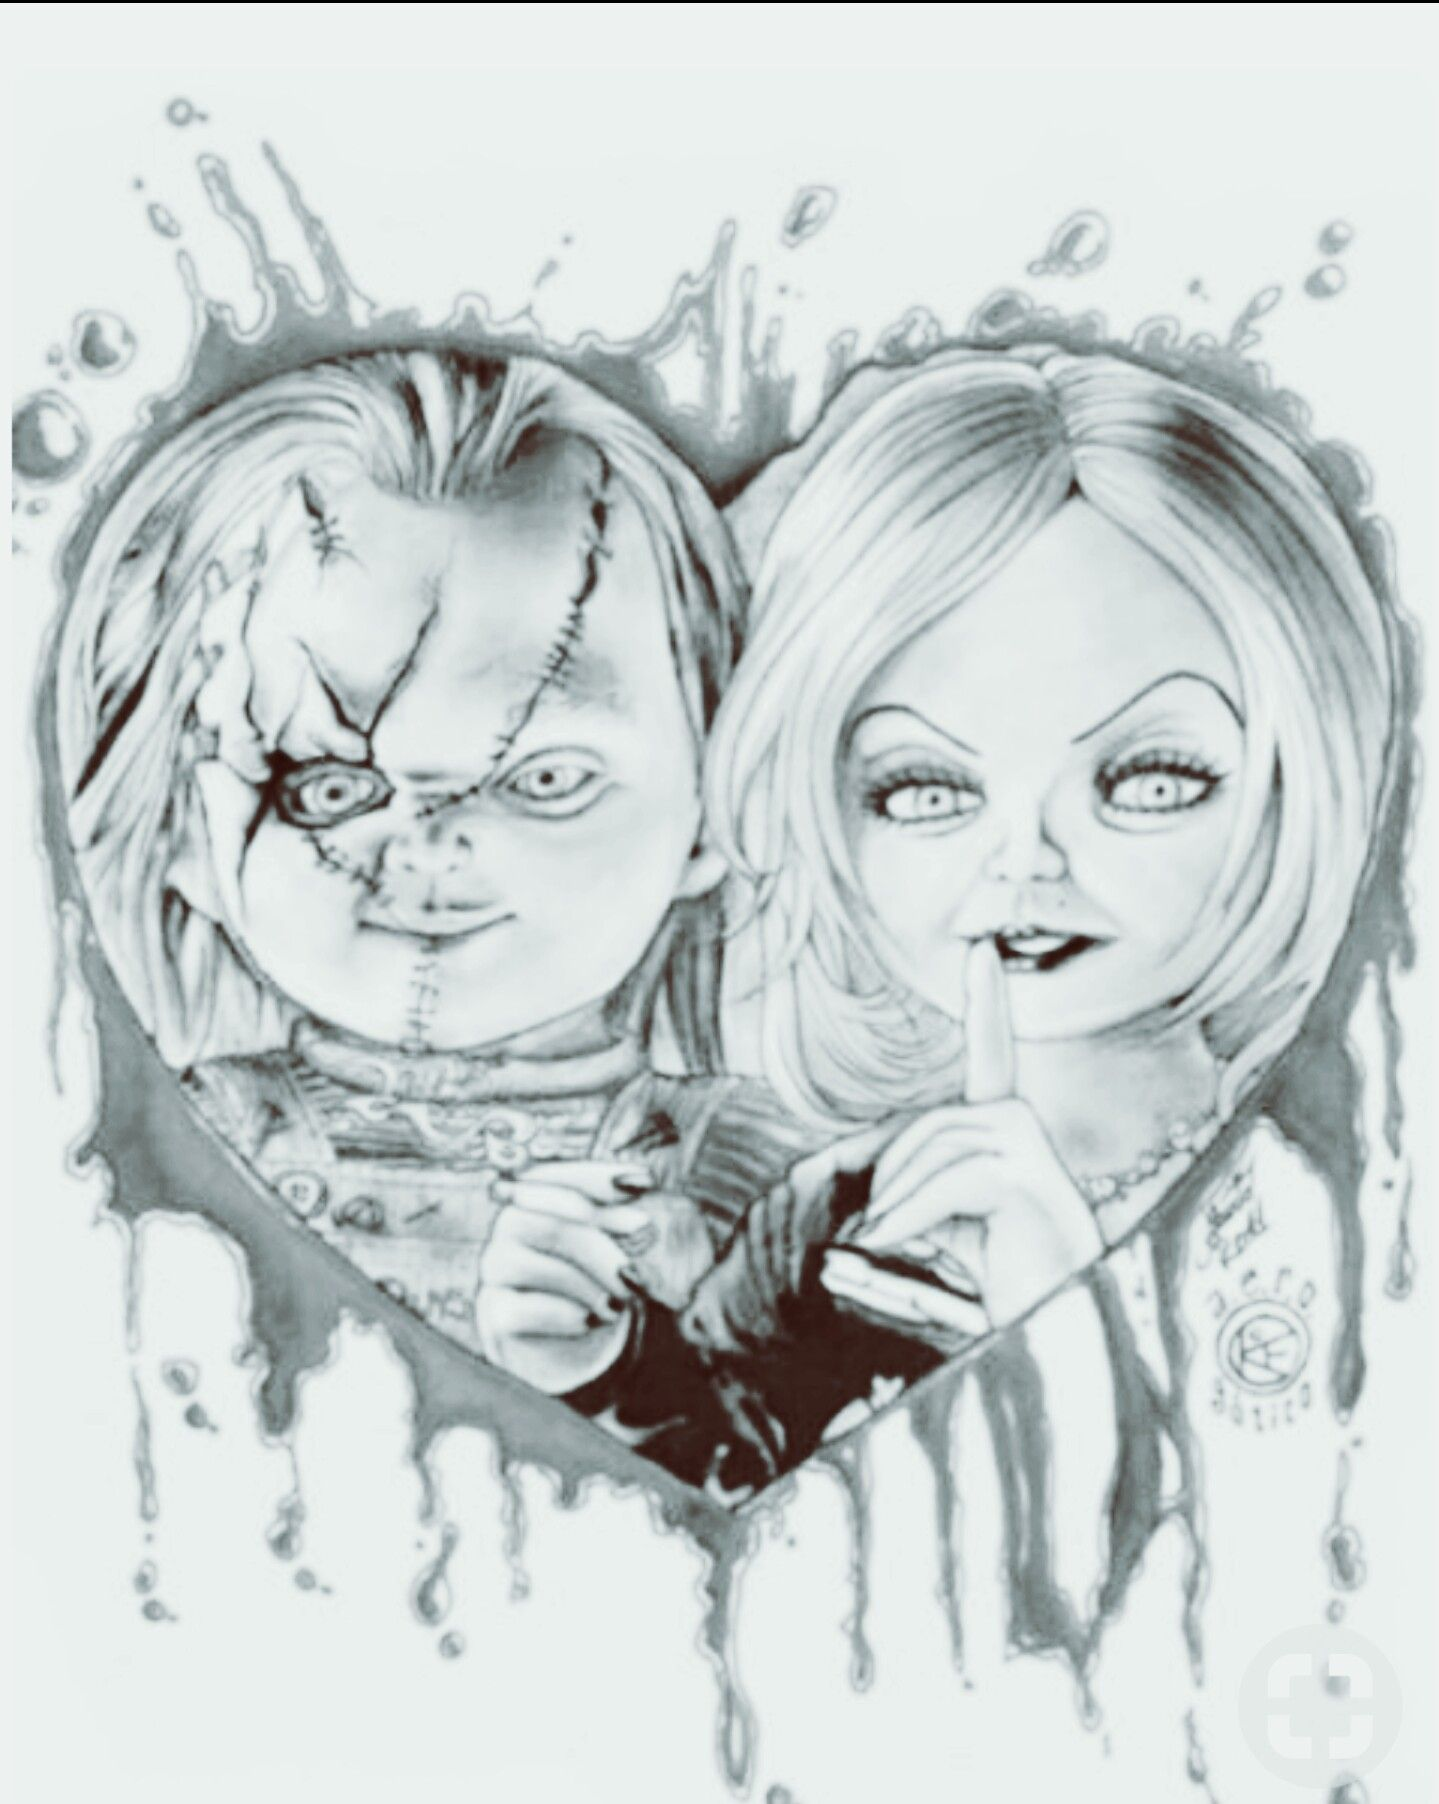 Pin By Evelien Janssen On Wood Burning Scary Drawings Horror Drawing Chucky Drawing